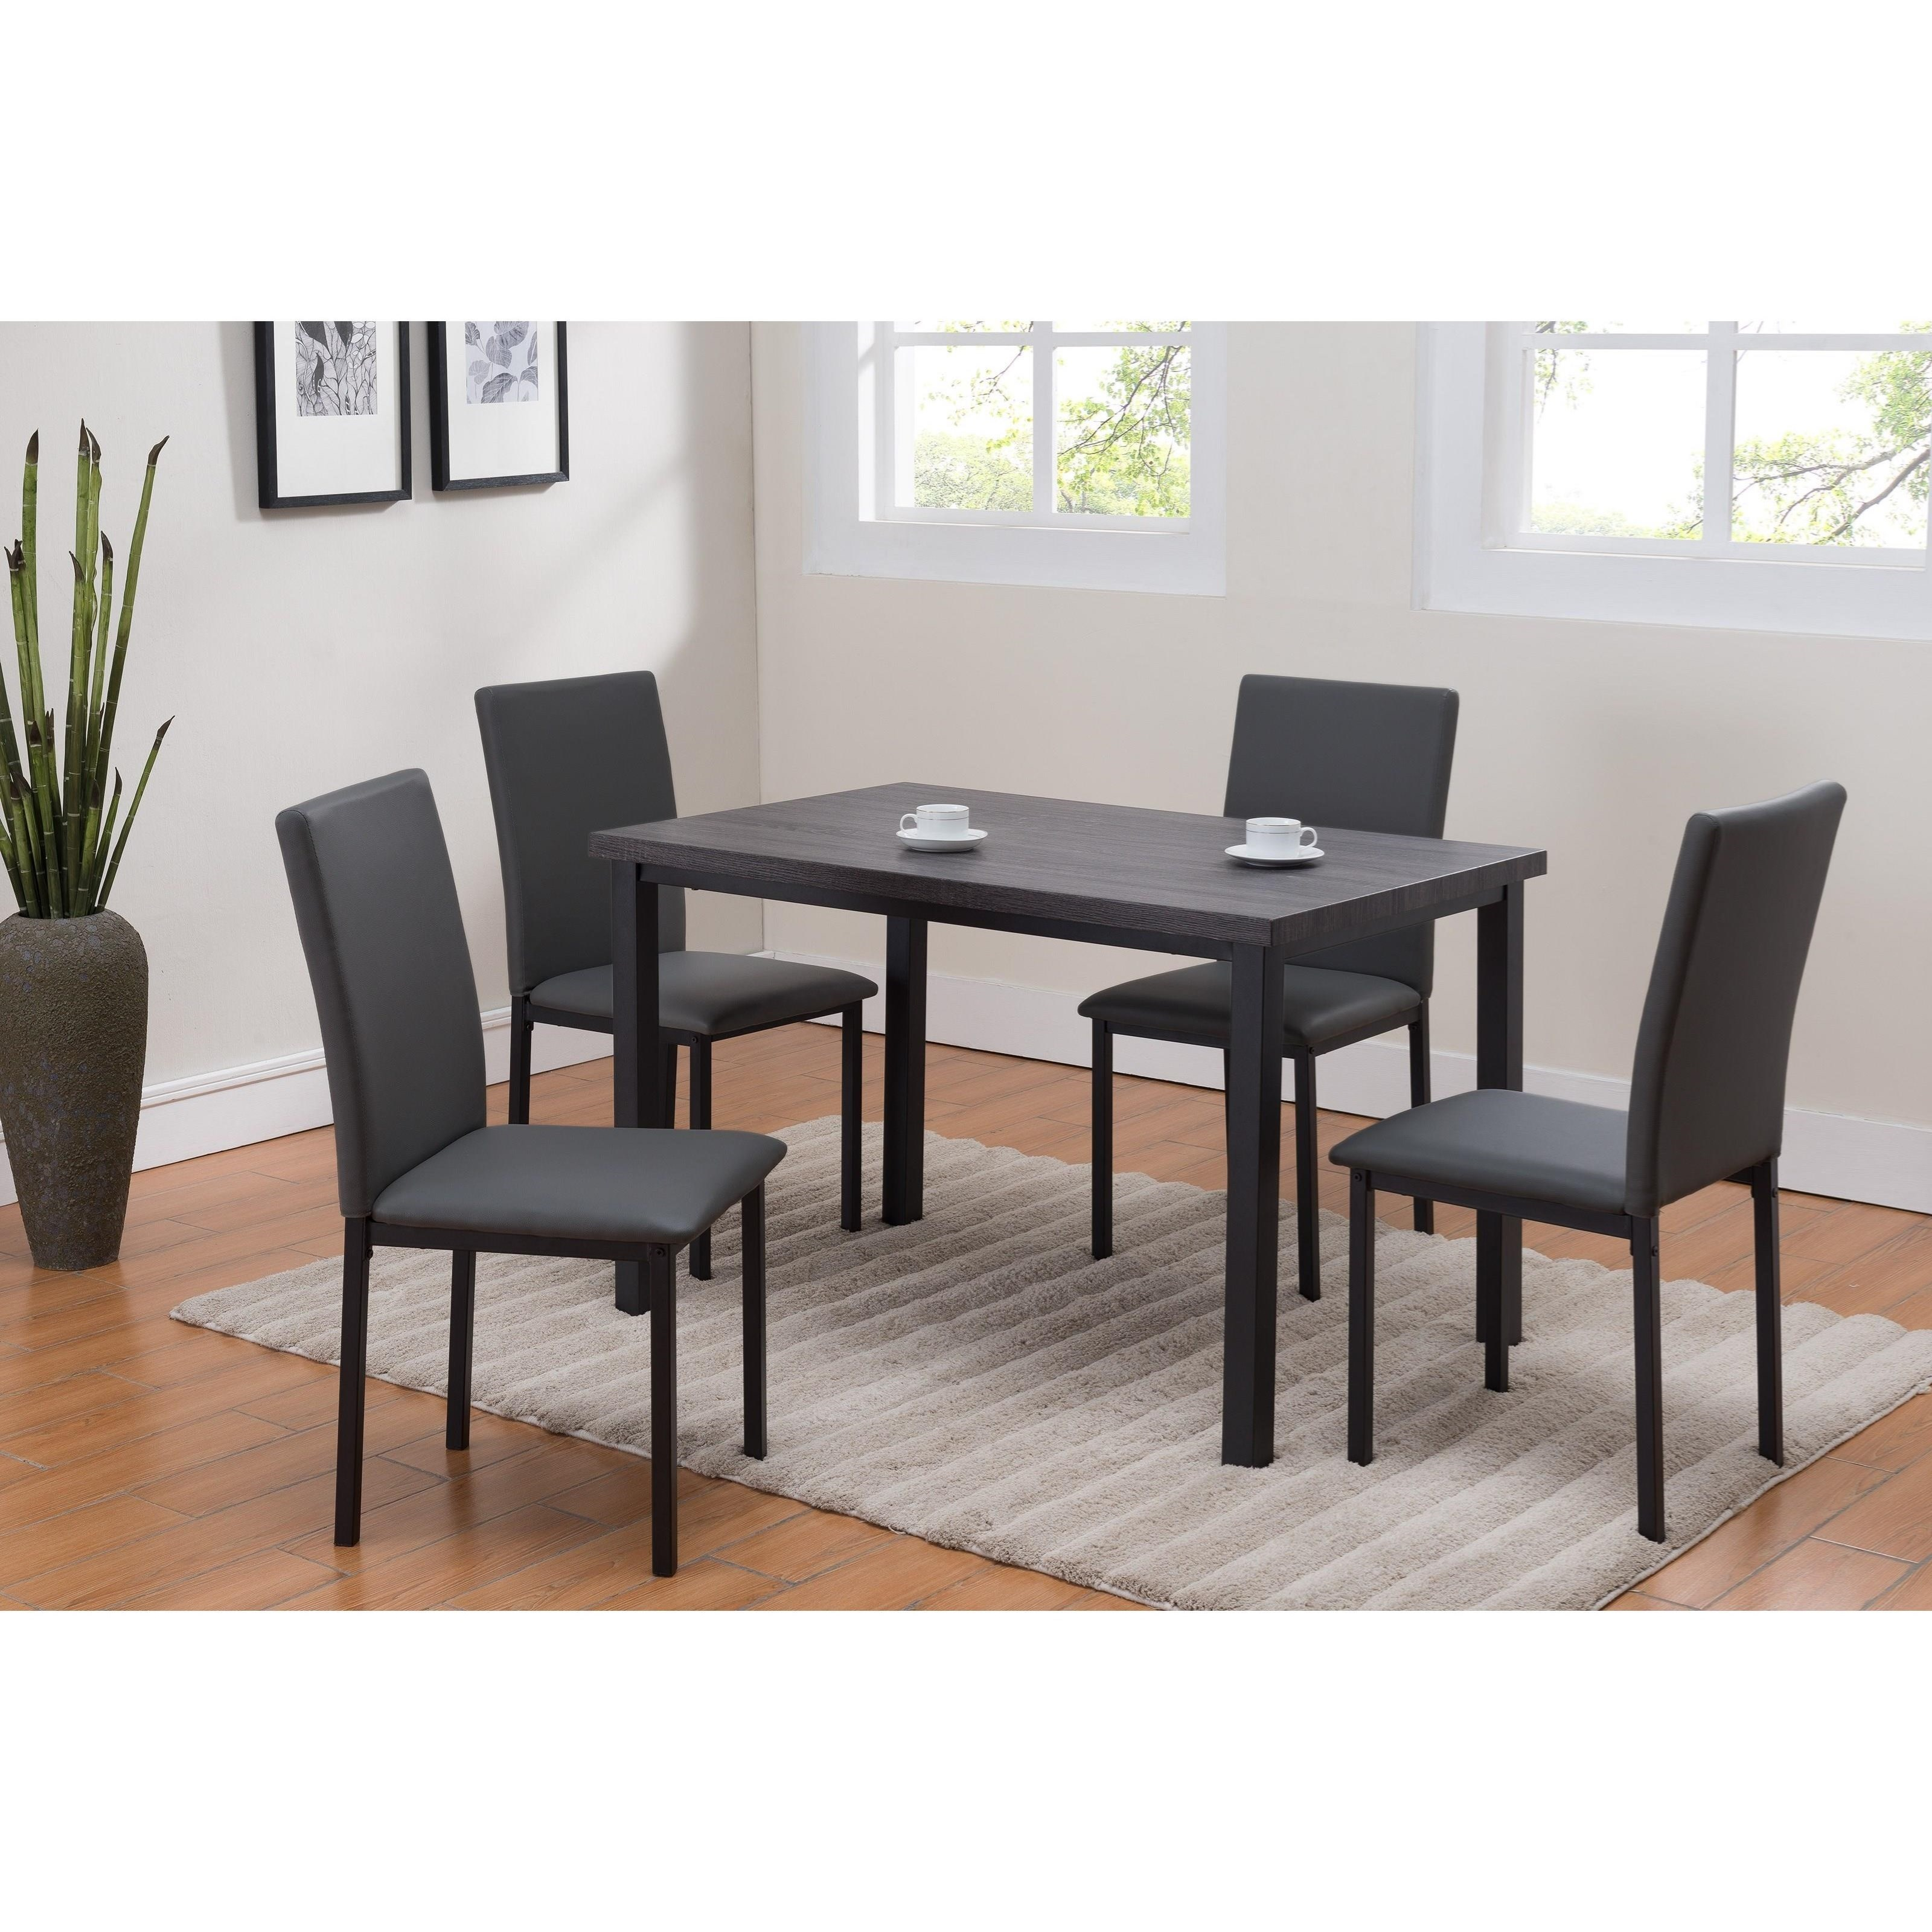 Orlo 5 Piece Dinette by Crown Mark at Northeast Factory Direct